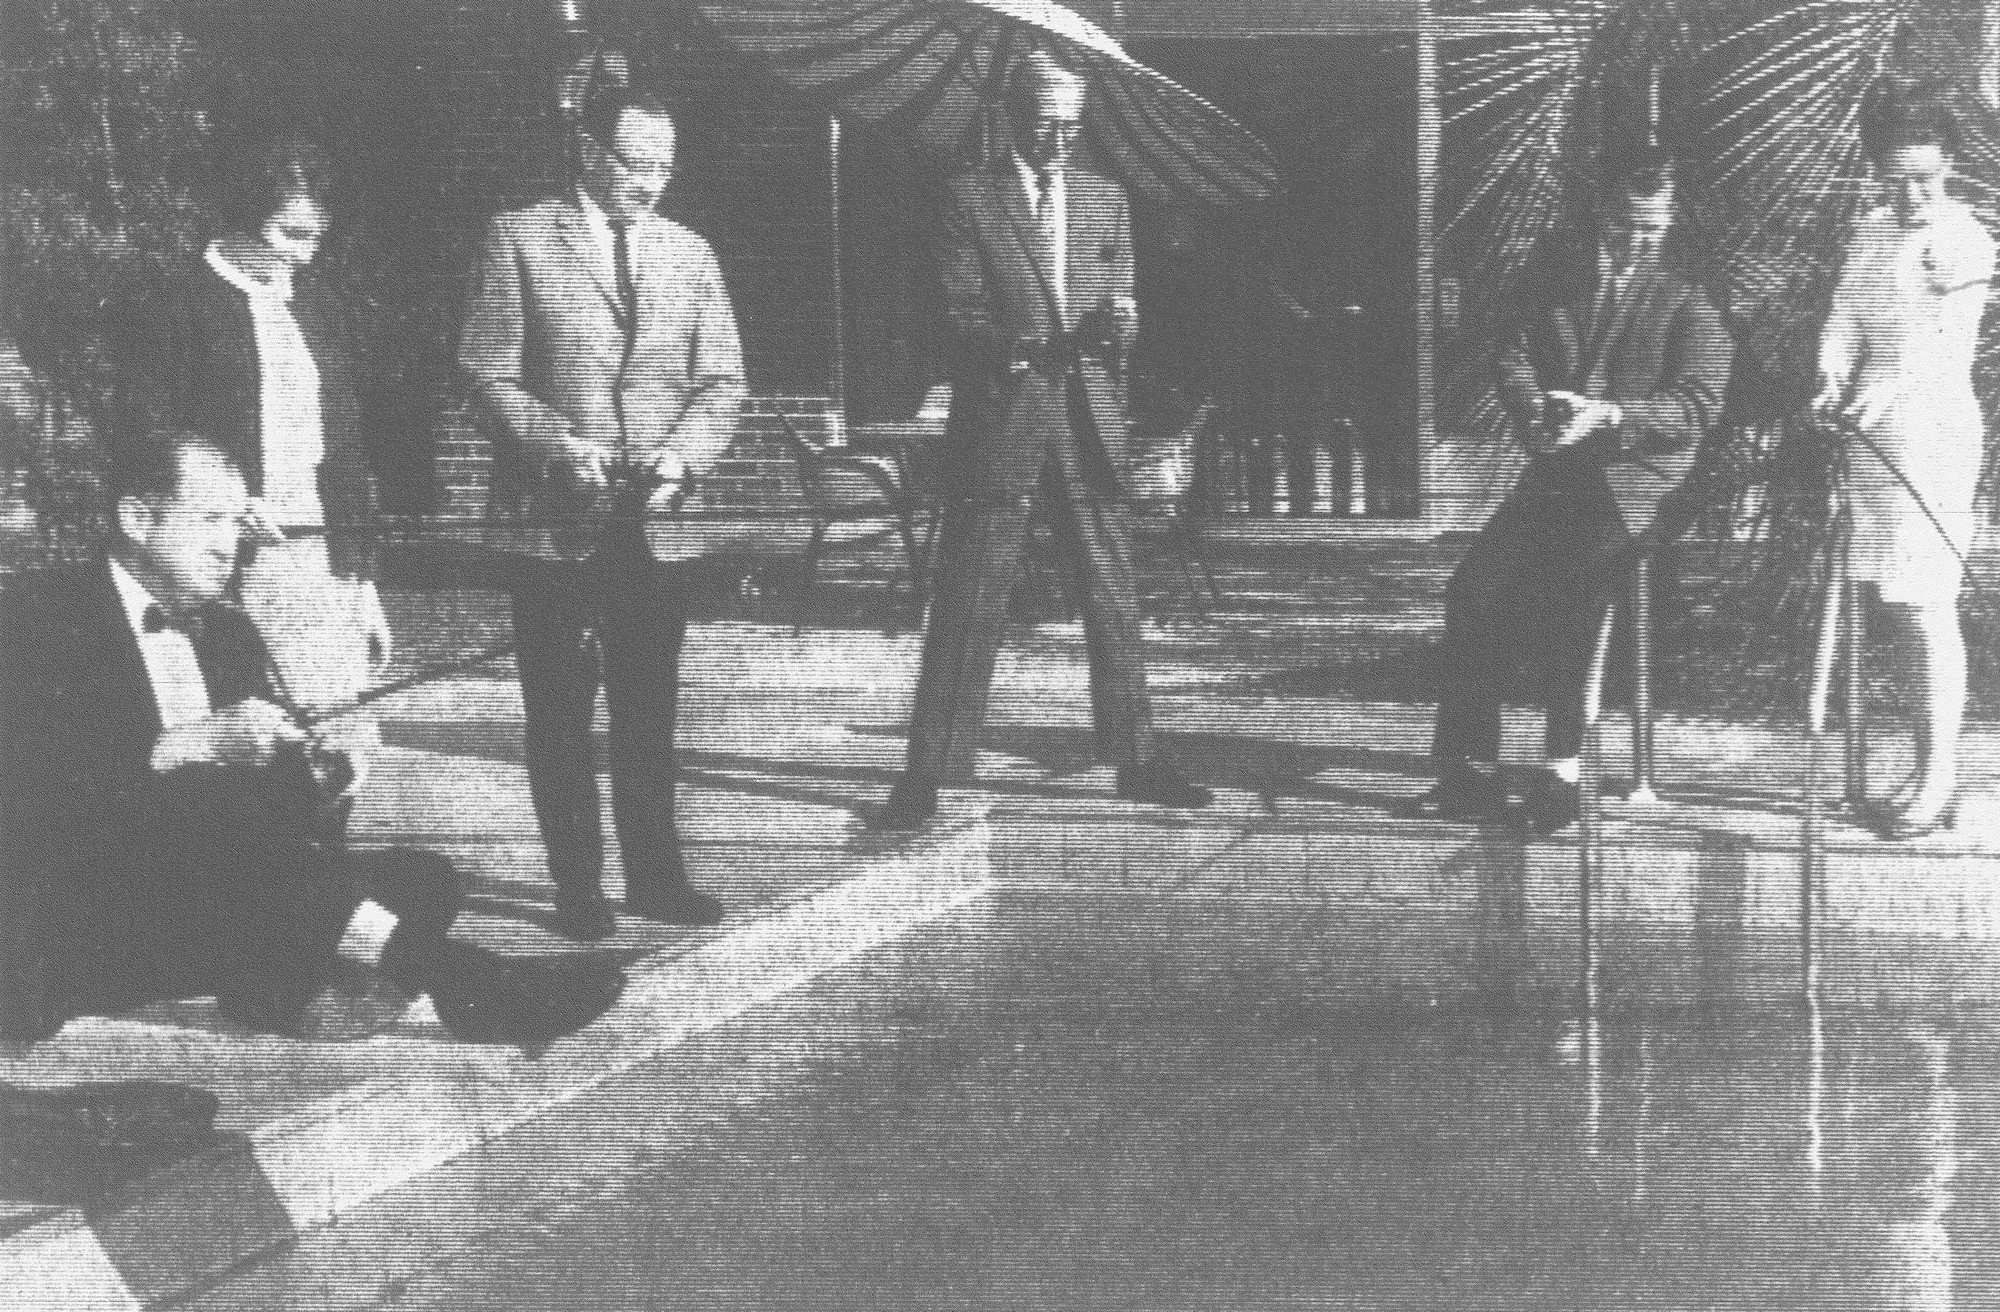 1969 - Pranksters put four catfish in the Sumter Holiday Inn's swimming pool during a weekend in March, and guests and members of the motel's staff went fishing. One of the fish was caught with a dip net, but the other three were not receptive to lures that day.